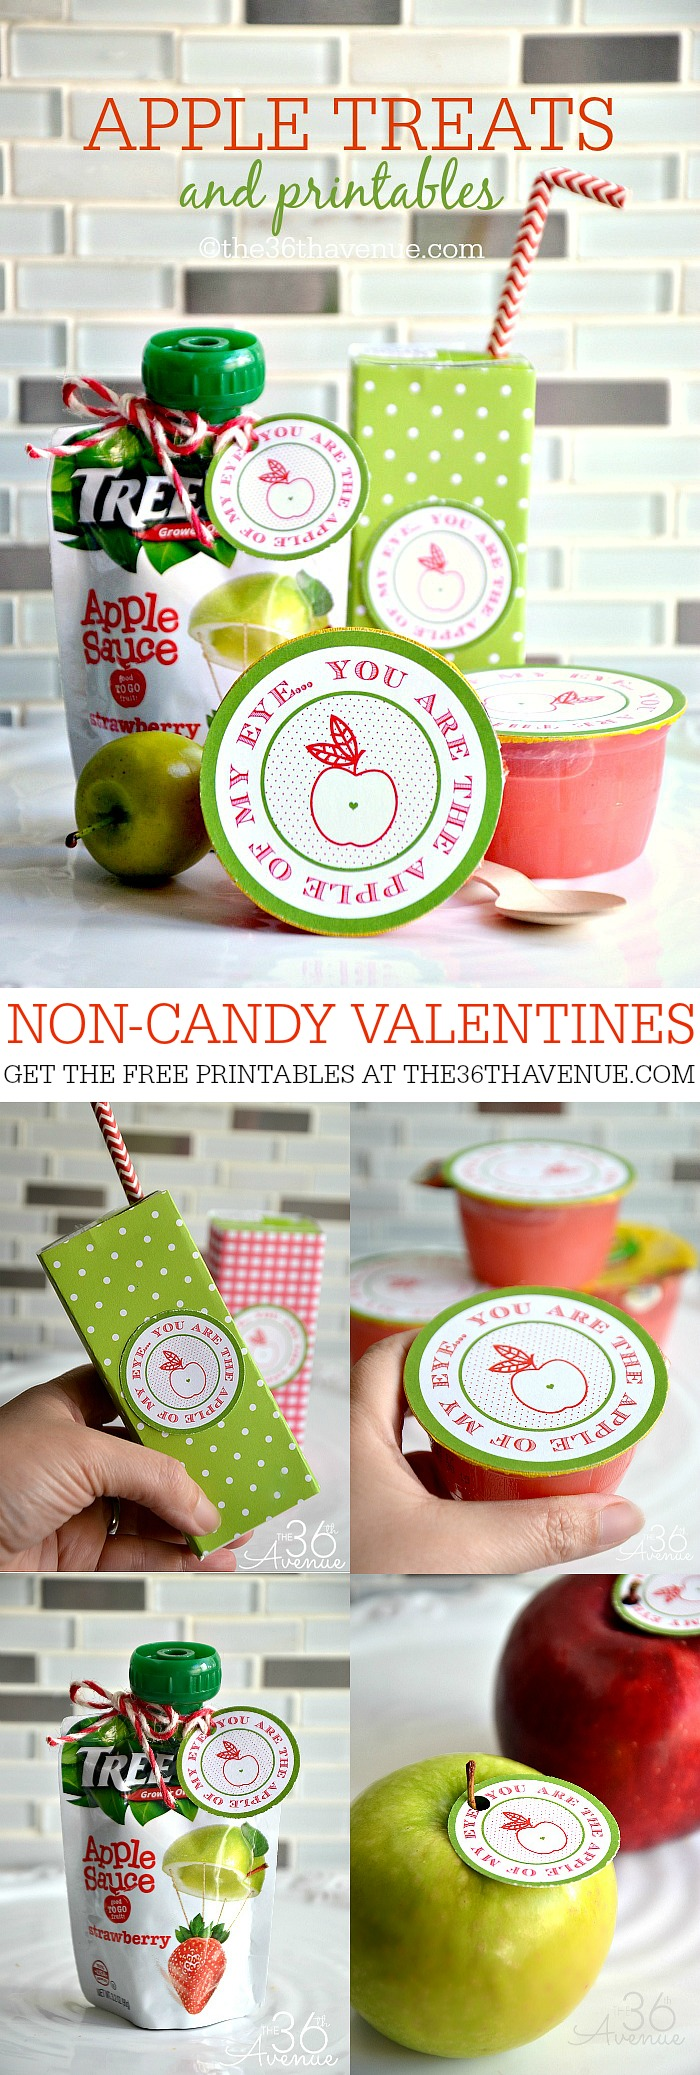 Valentine Free Printable 7 at the36thavenue.com